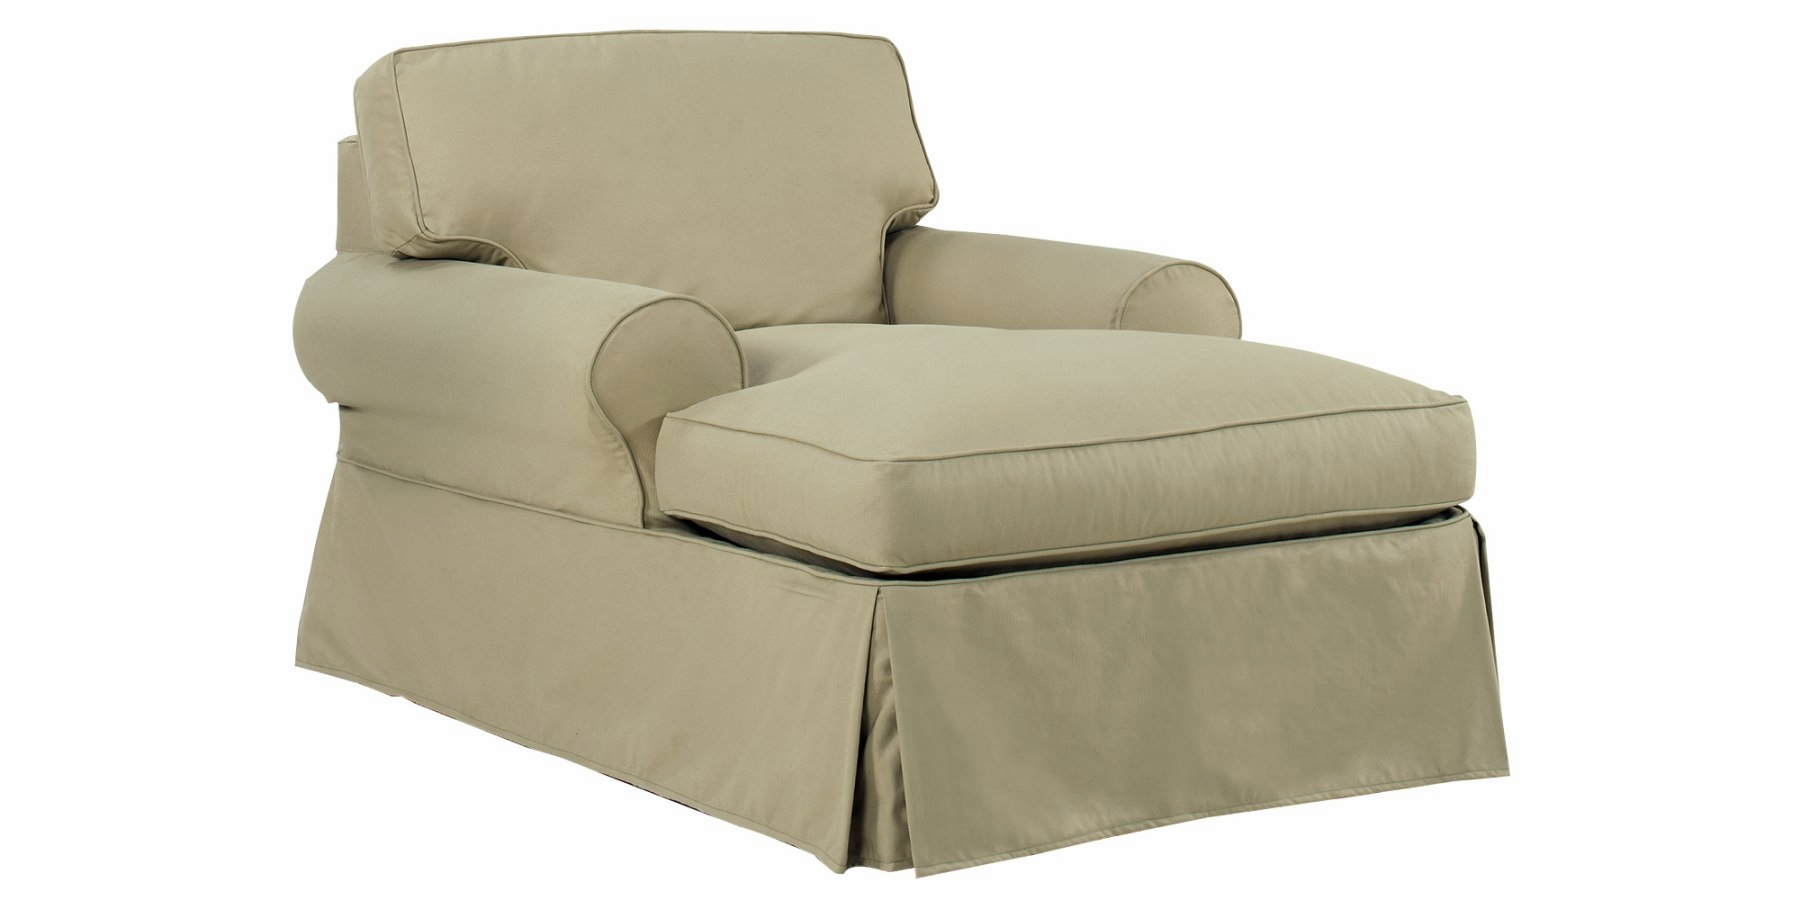 Oversized Cozy Chair Oversized Lounge Chair As Functional And Comfy Seater